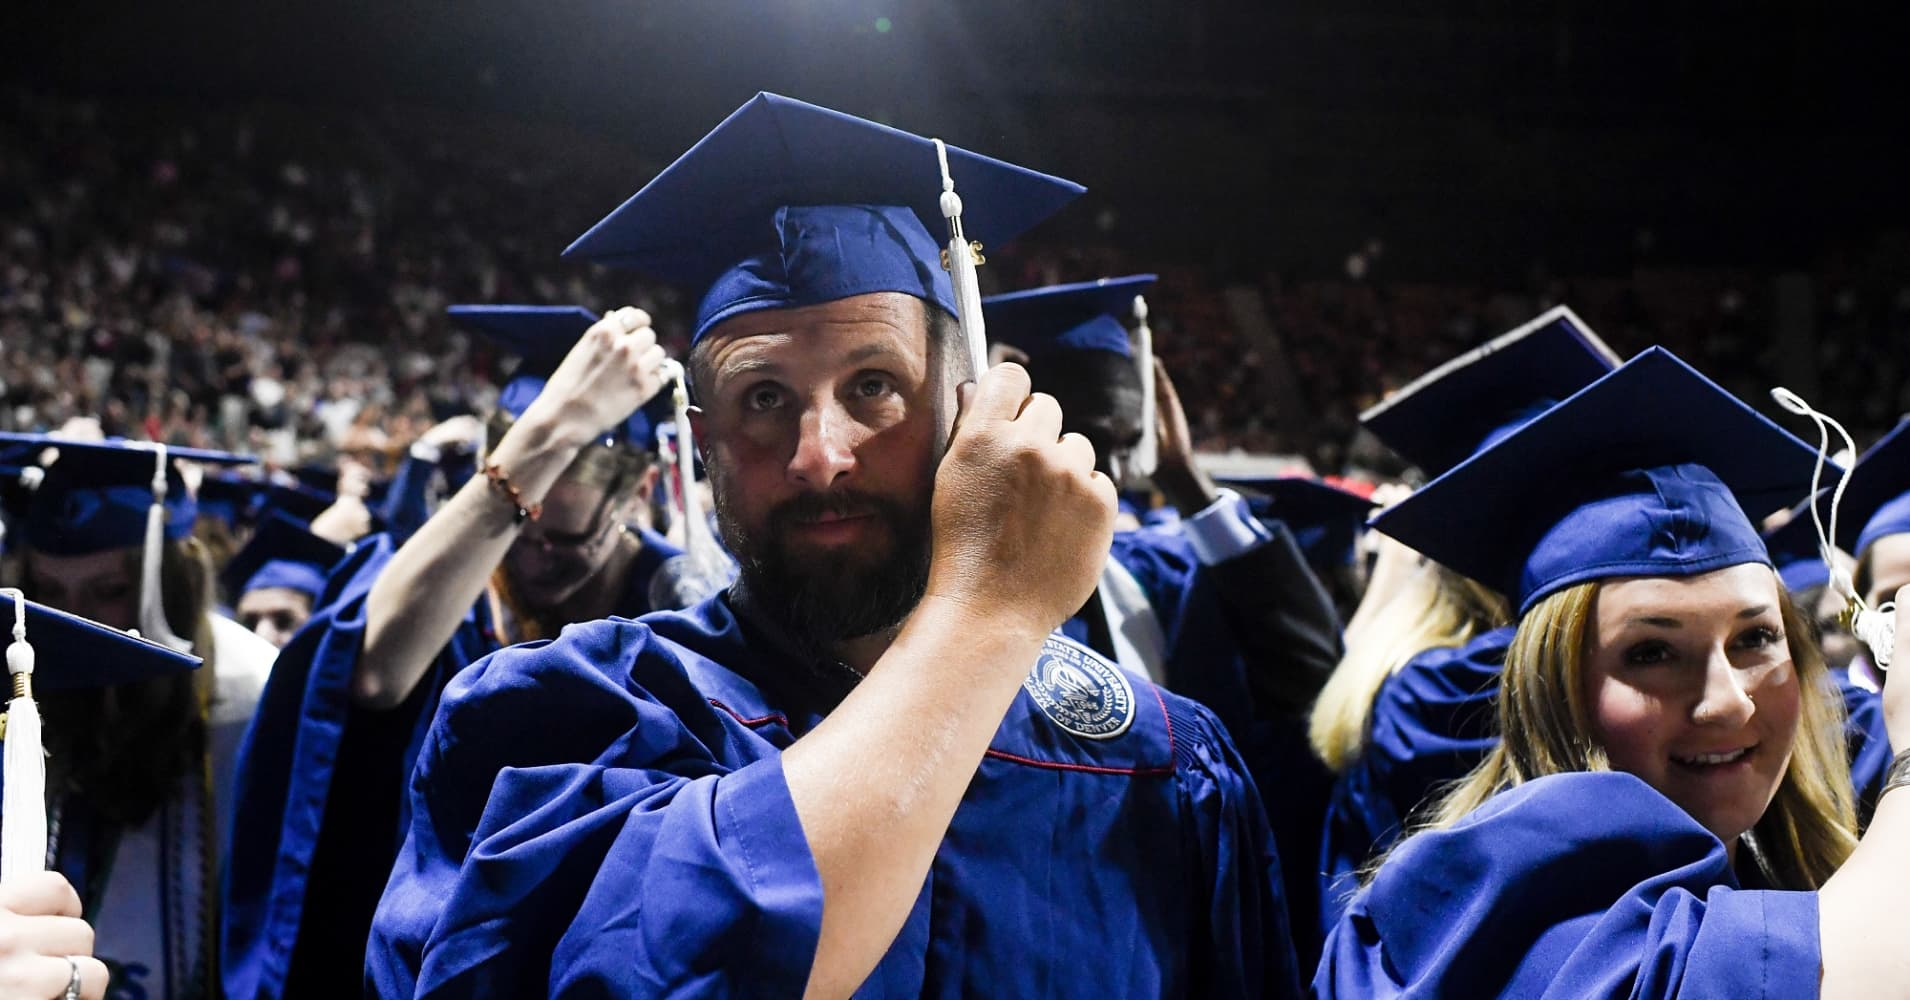 How Much Money To Give For High School Graduation 2020.The Top 50 Us Colleges That Pay Off The Most 2019